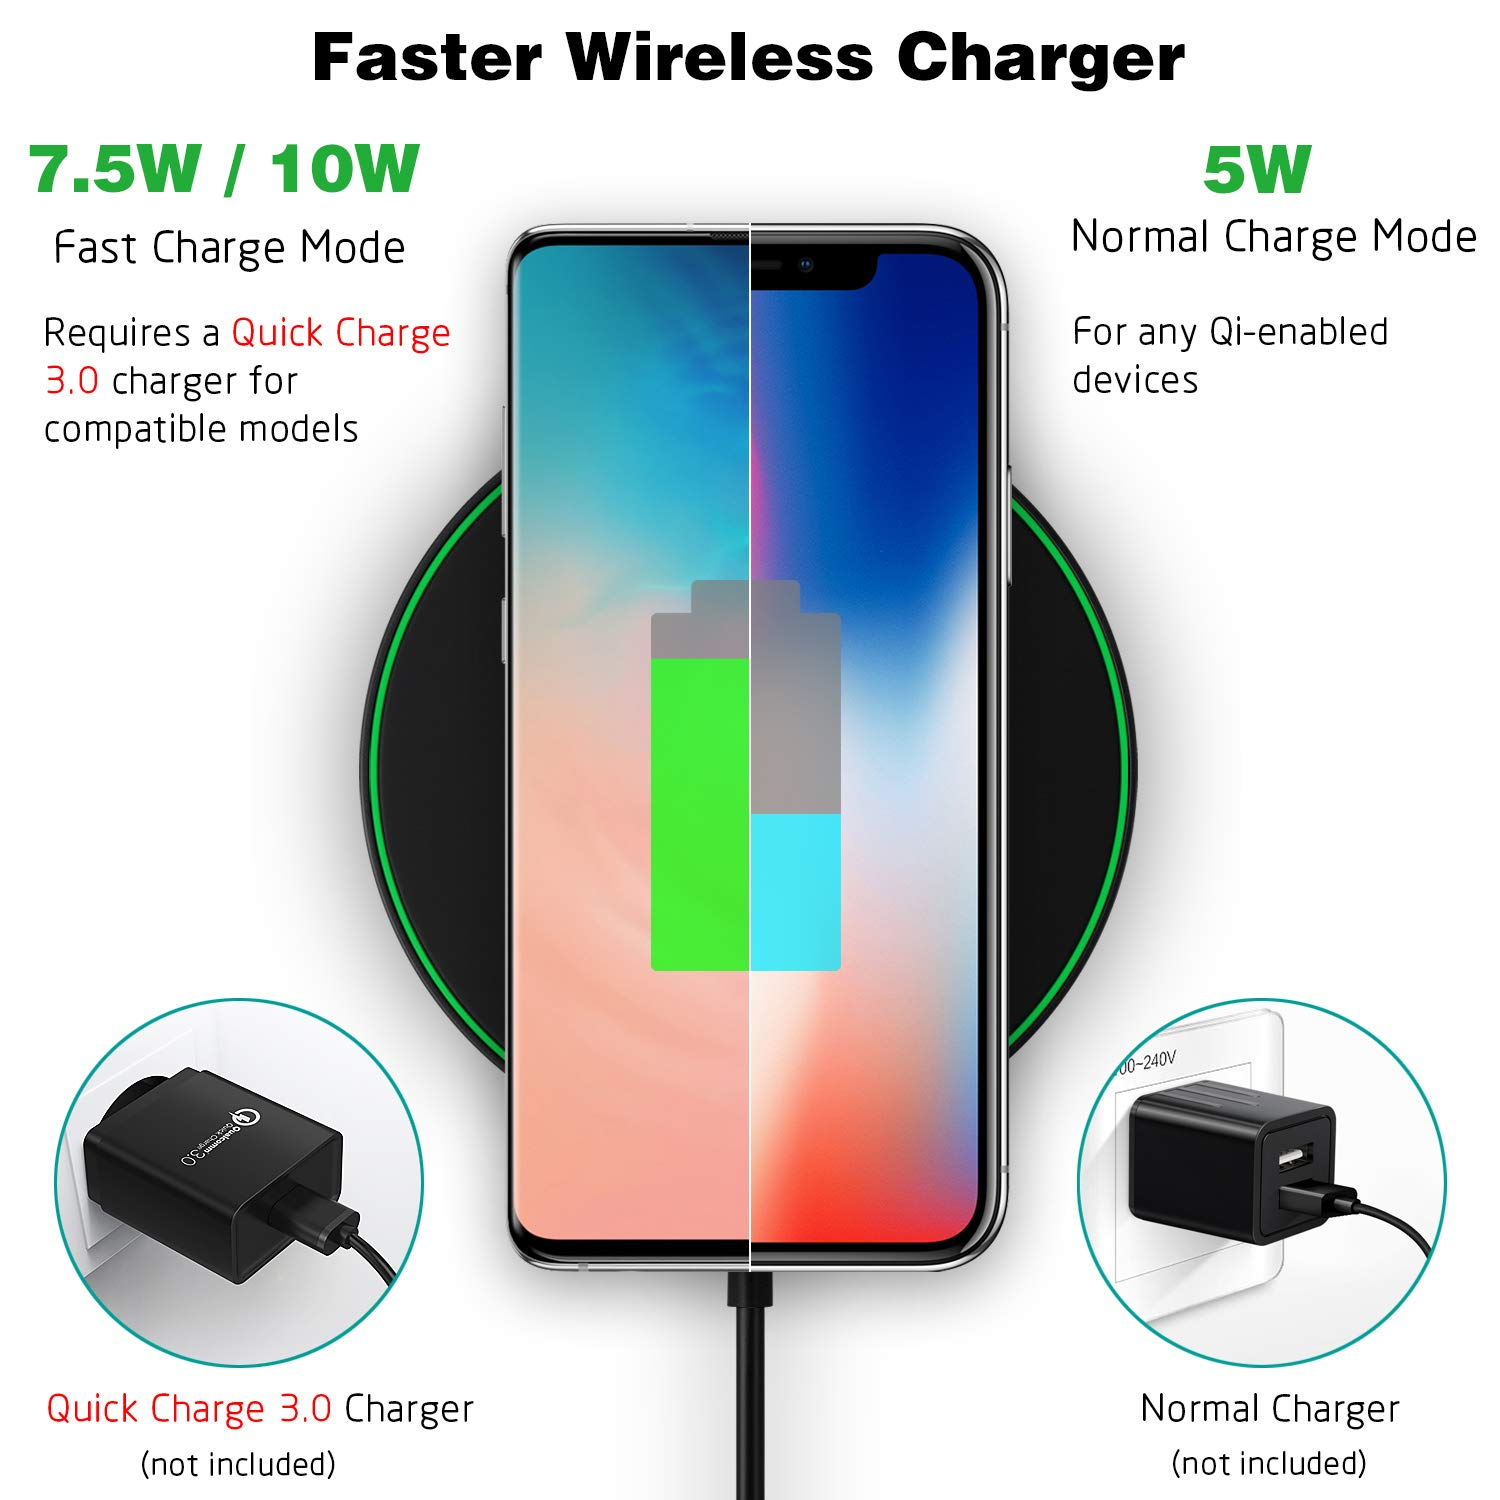 Faster Wireless Charger